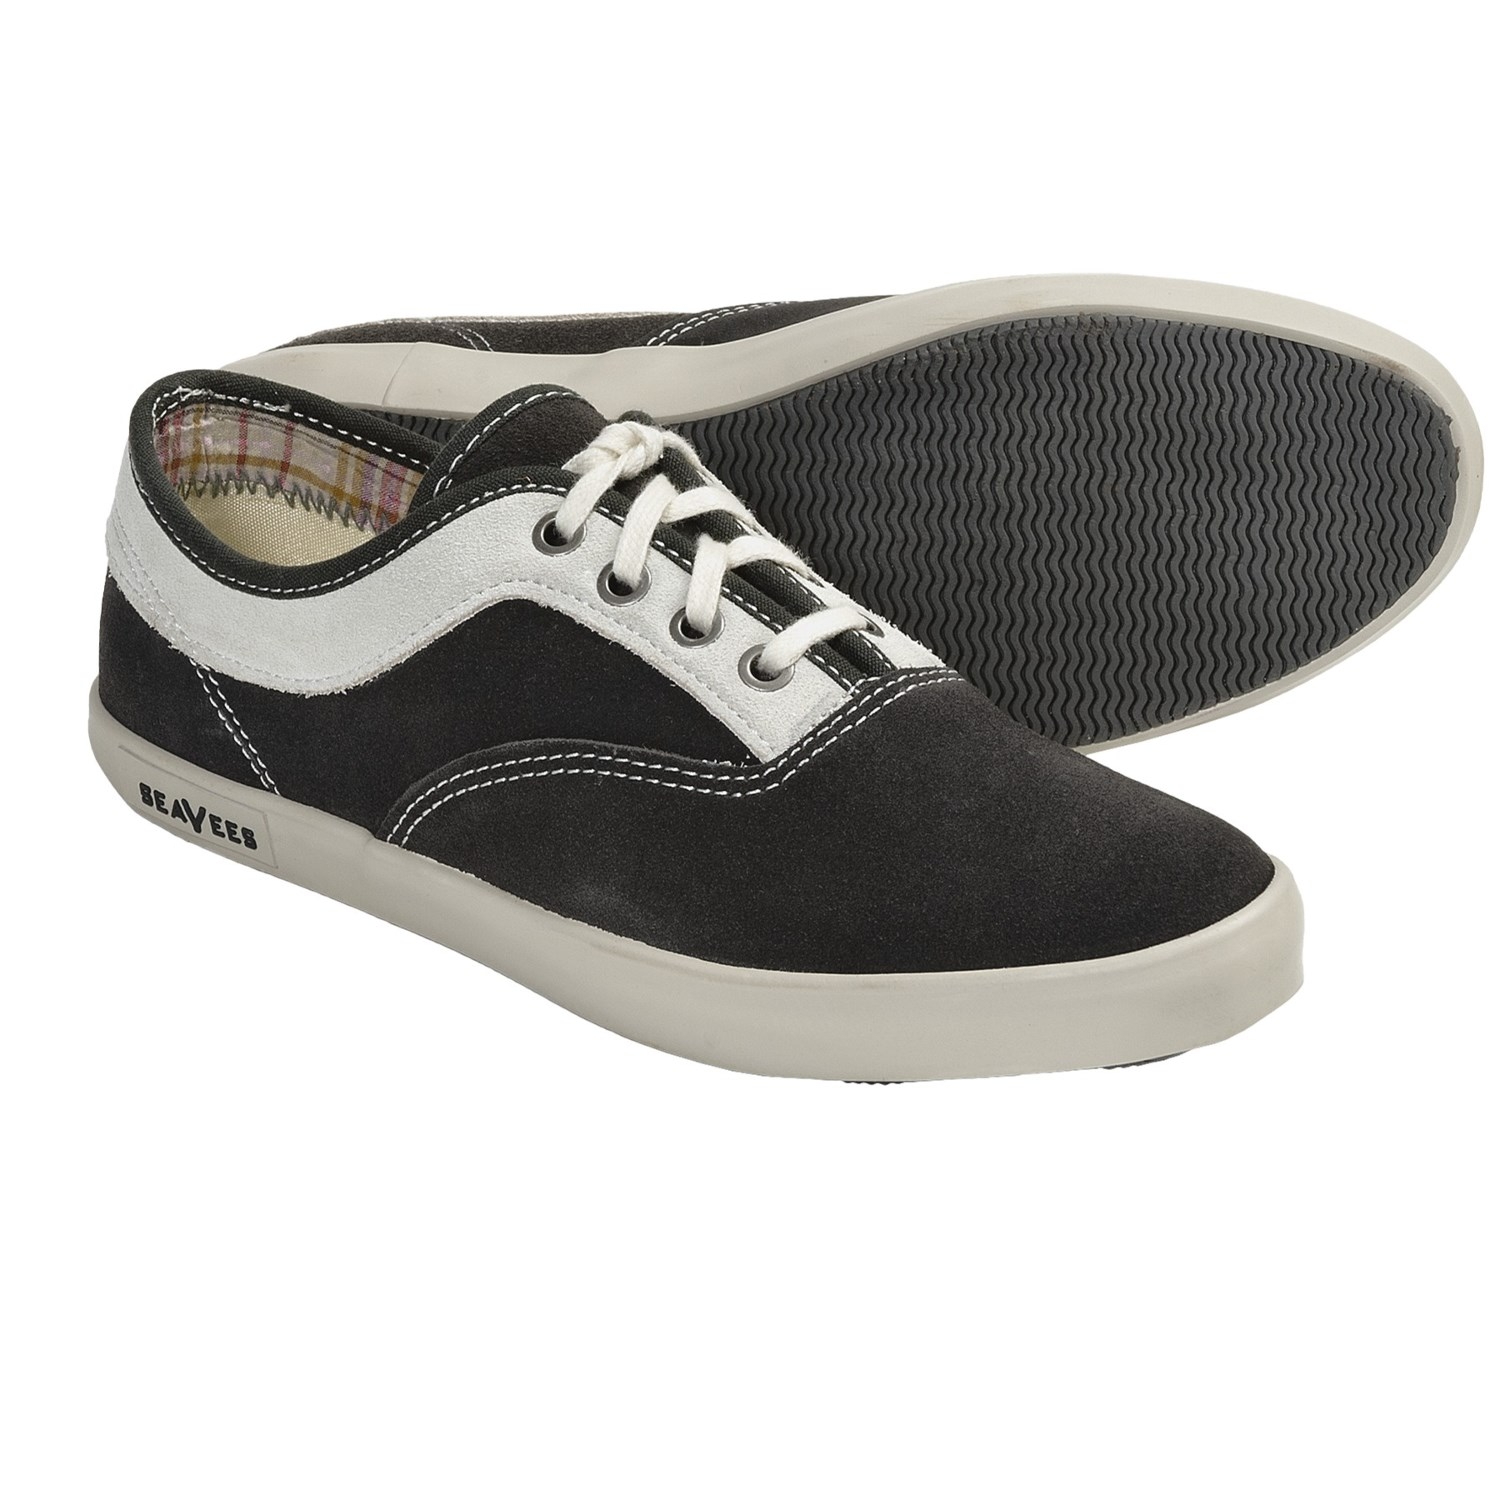 seavees 09 61 volunteer plimsoll shoes lace ups for